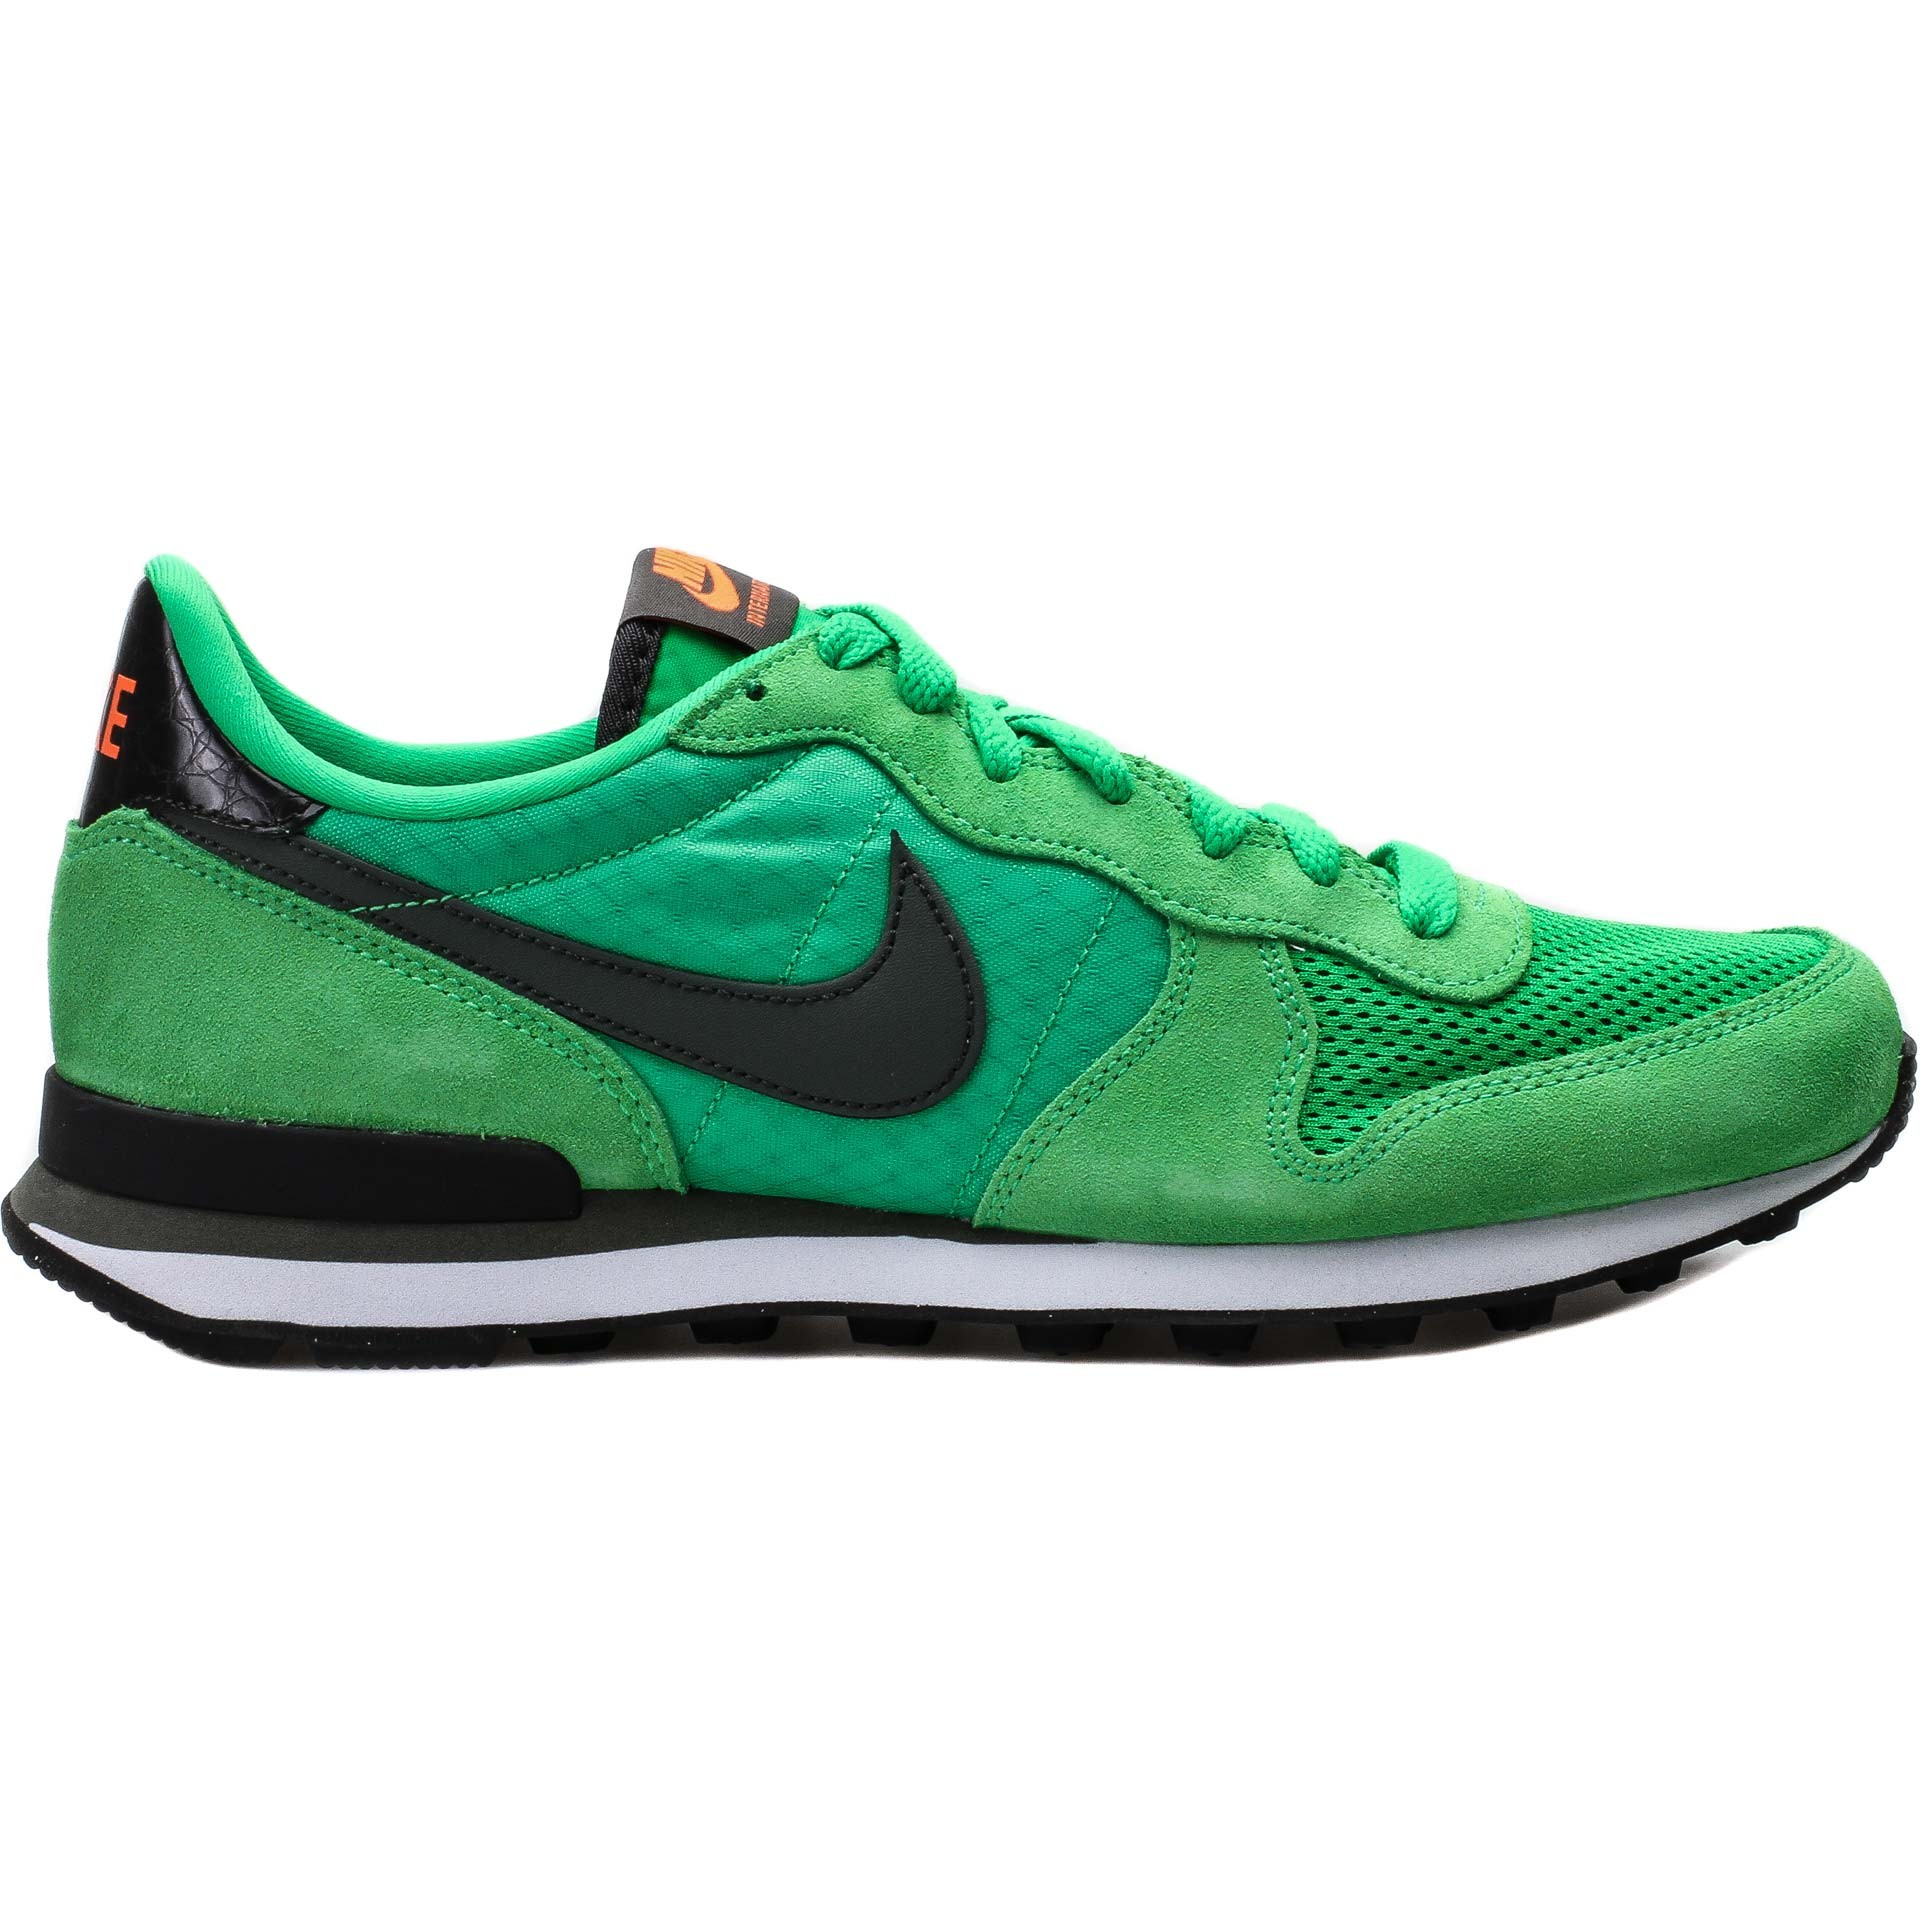 Homme Nike Internationalist Trainers Feu Vert Étincelle/Anthracite/Pierre De Jade/River Rock 631754-301